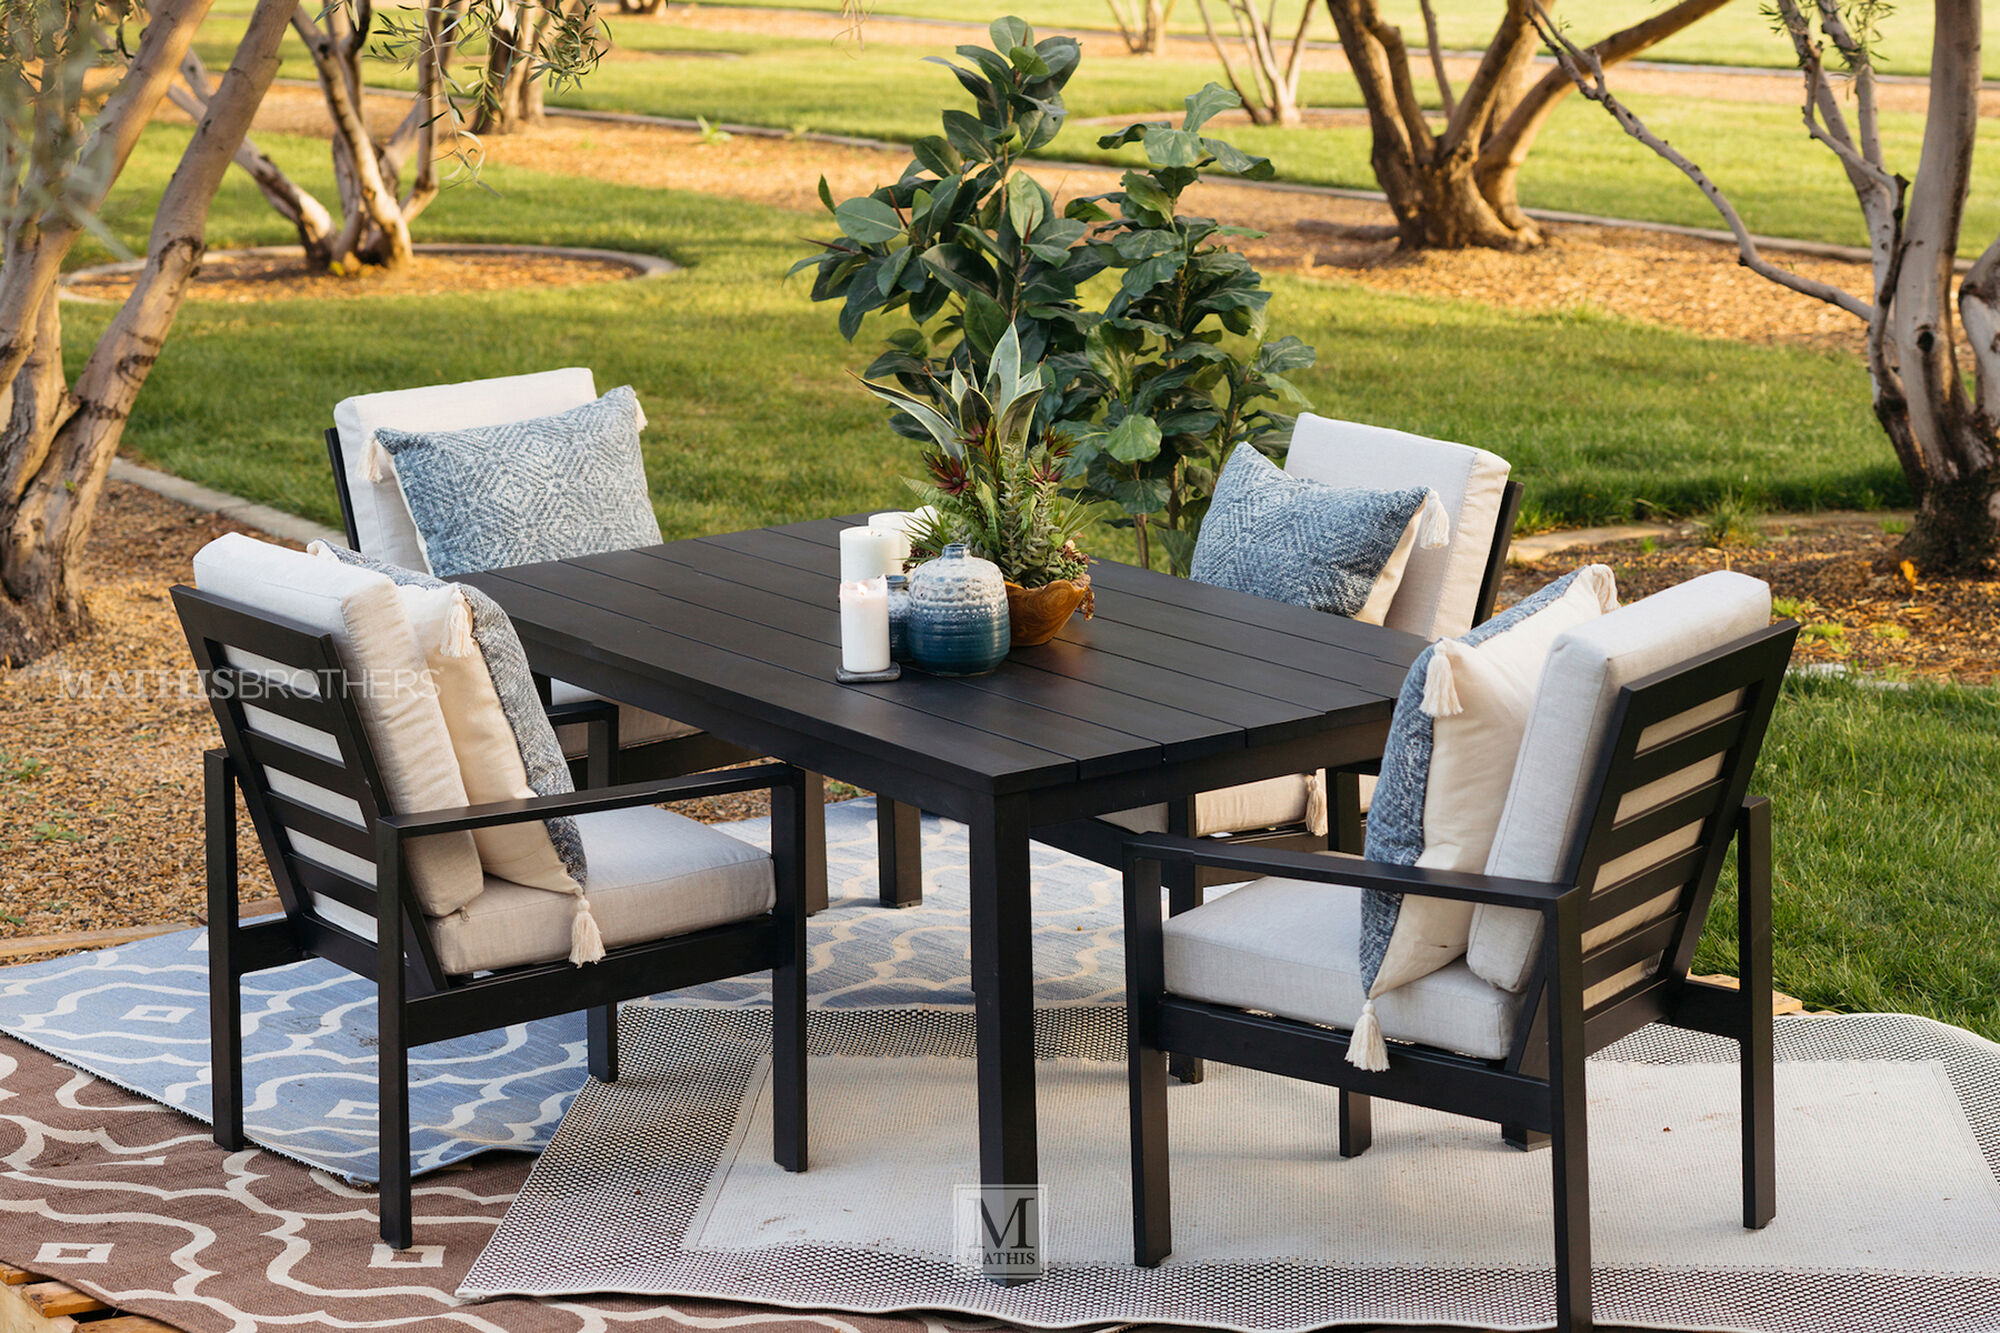 modern aluminum patio dining chair in black mathis brothers furniture. Black Bedroom Furniture Sets. Home Design Ideas